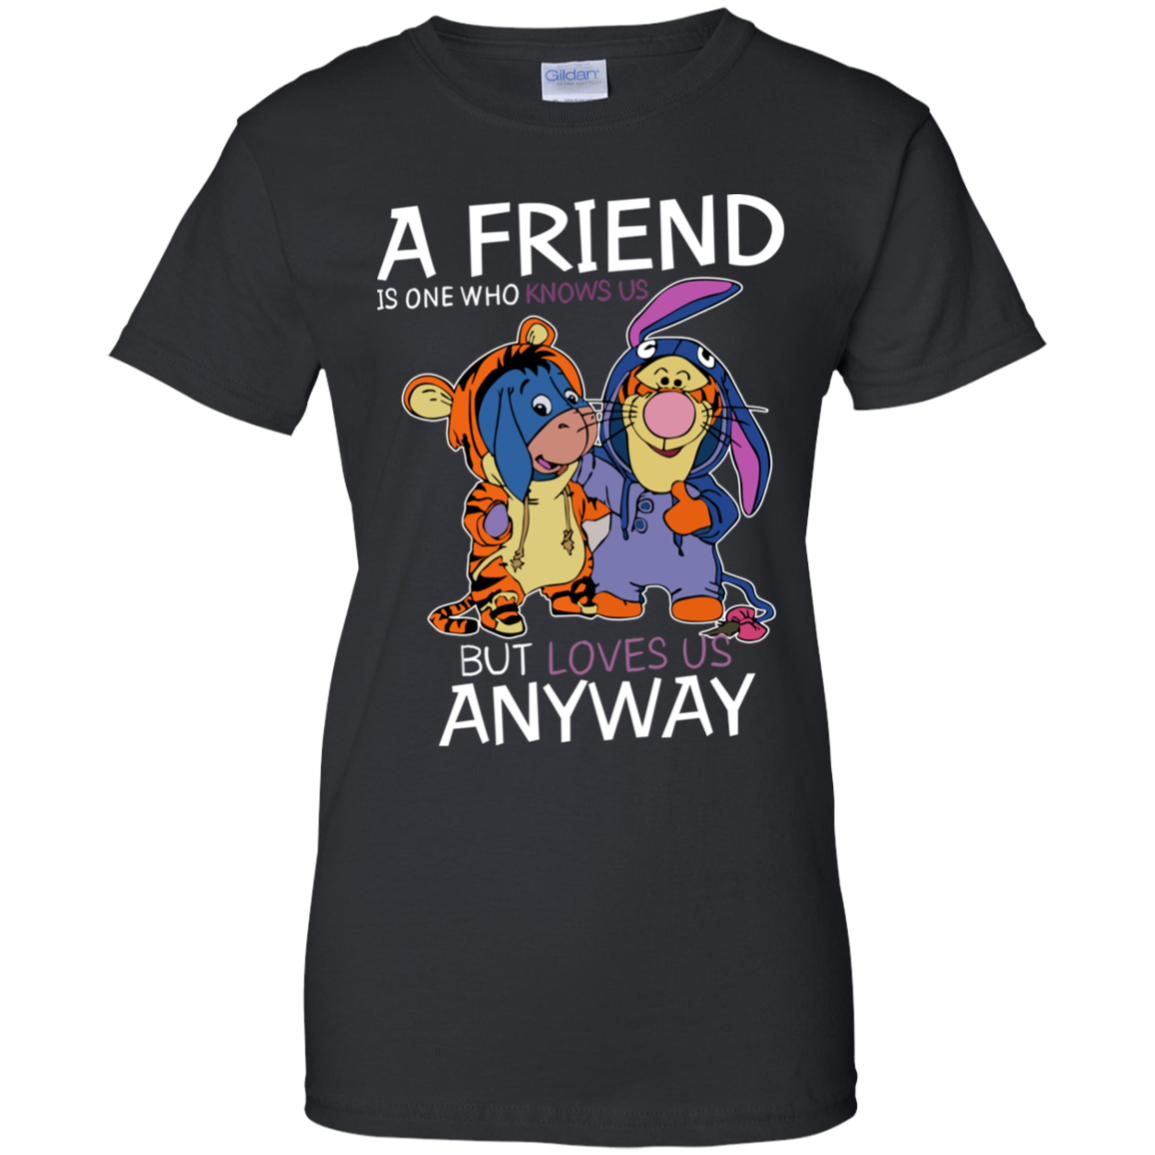 a_friend_aw Eeyore And Tigger Friend Gift T Shirt Black Cotton Ladies